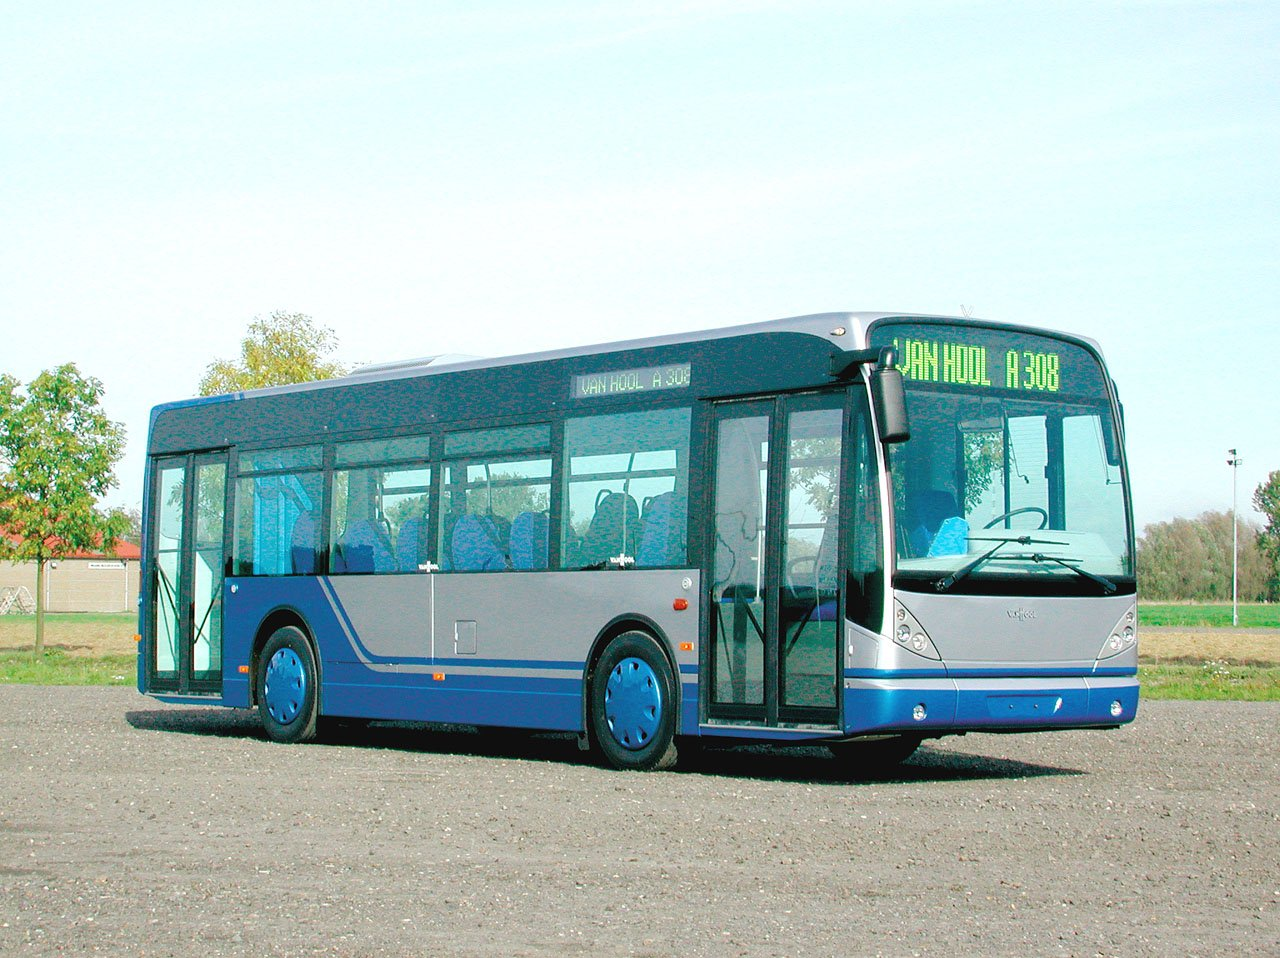 Van hool a308 photo - 1